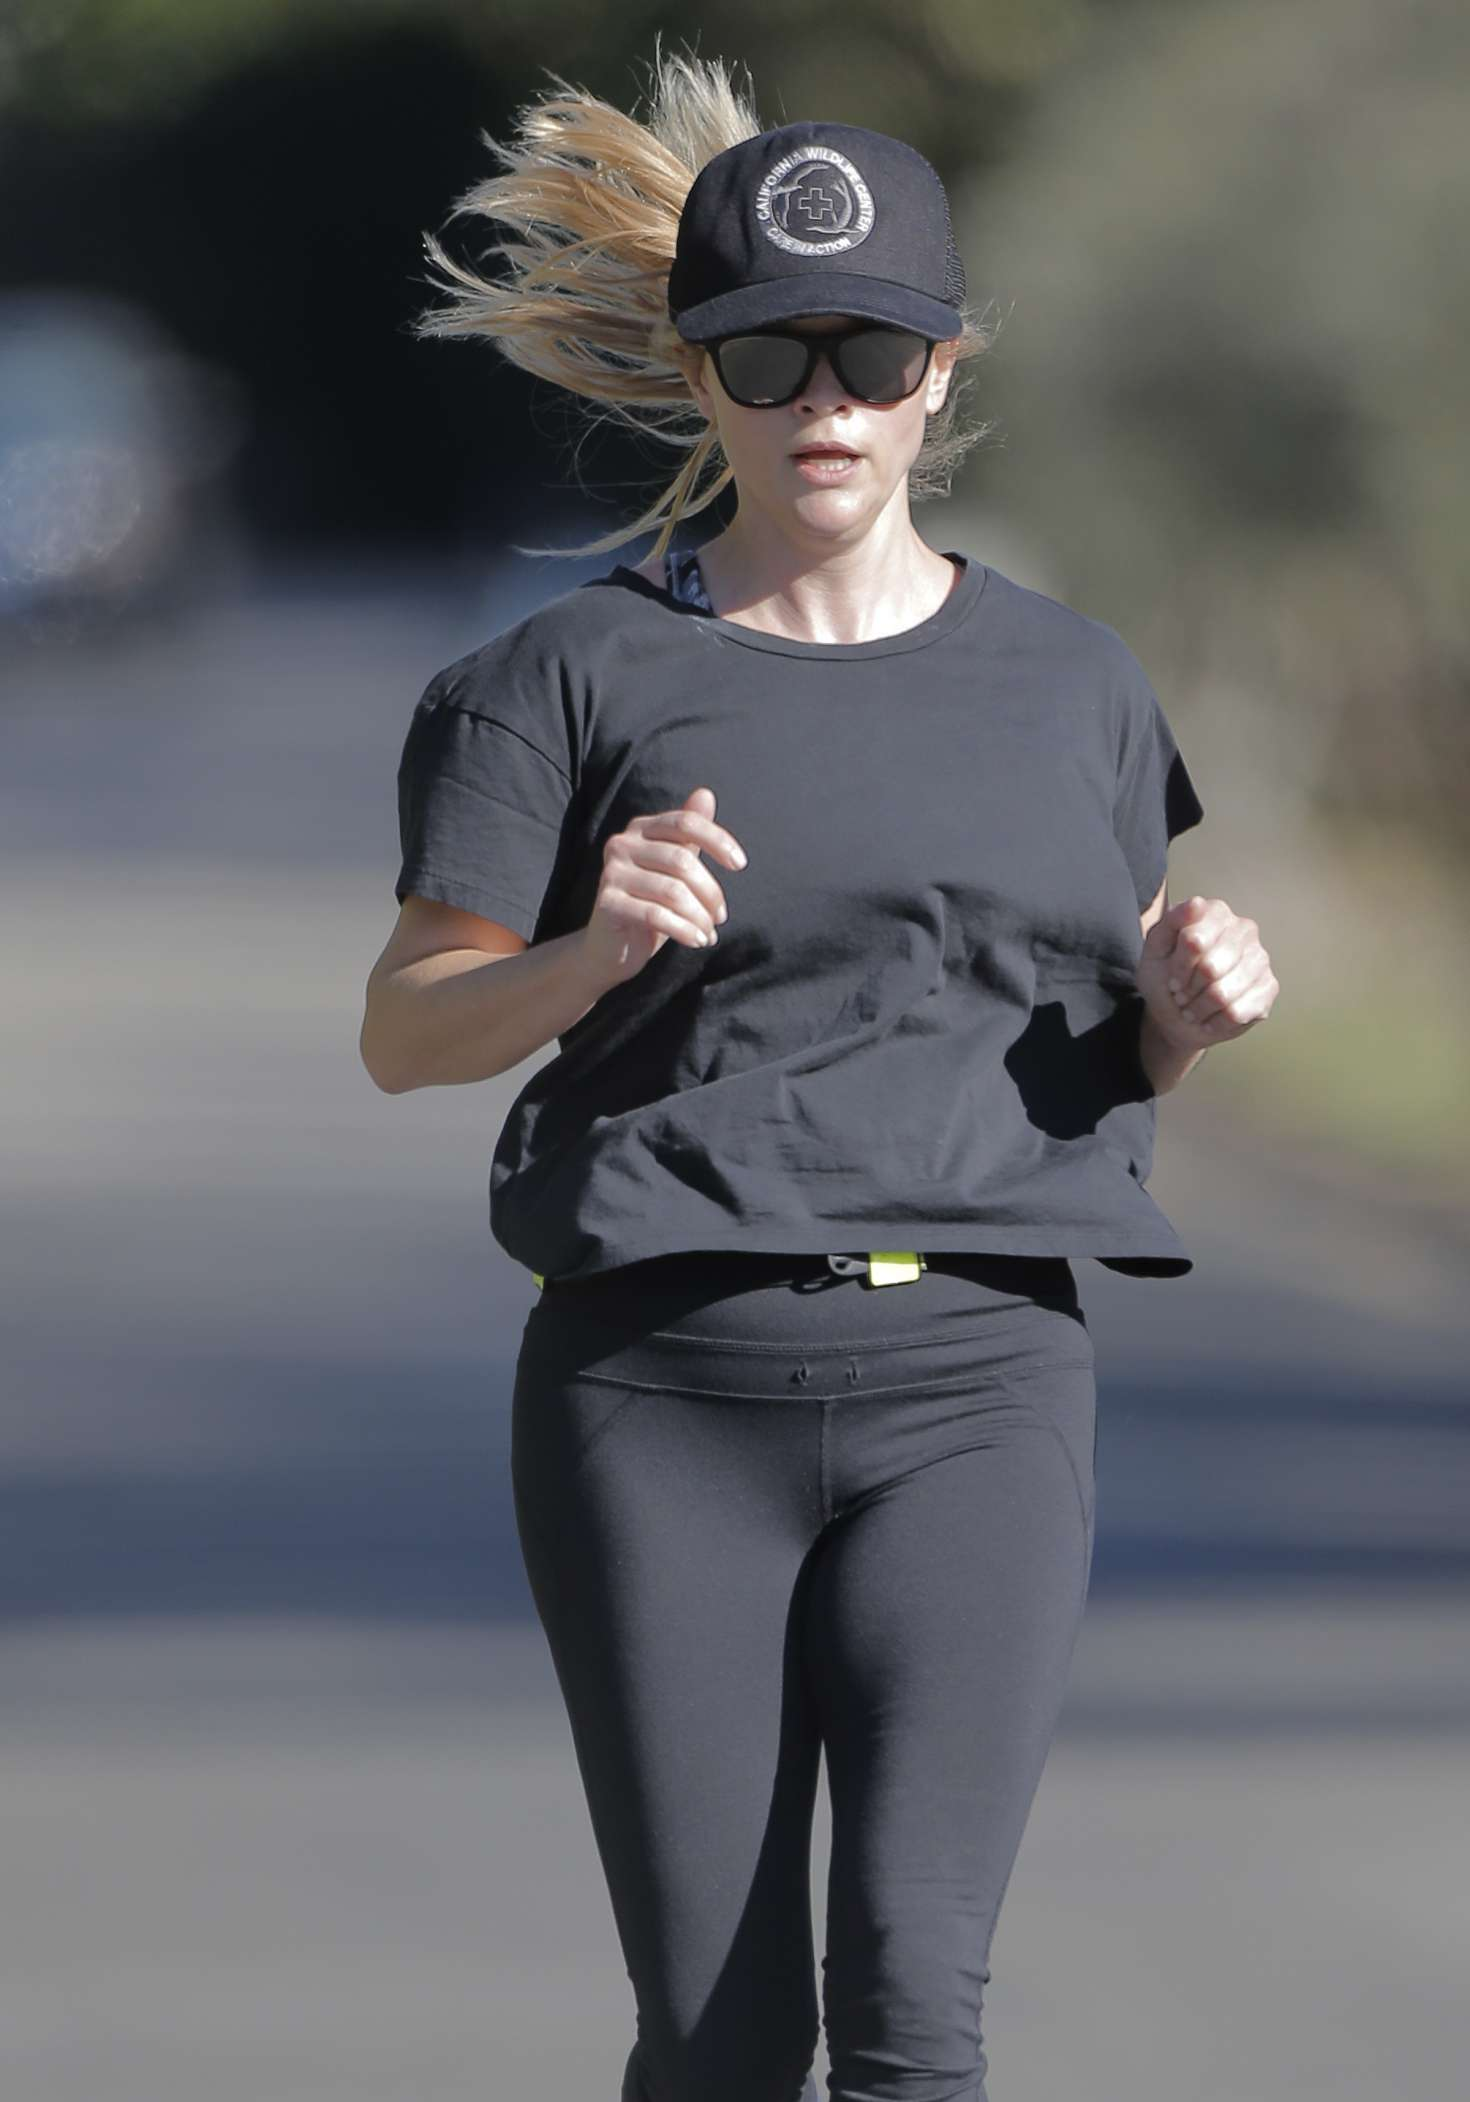 Reese Witherspoon 2016 : Reese Witherspoon out for a jog in Brentwood -05